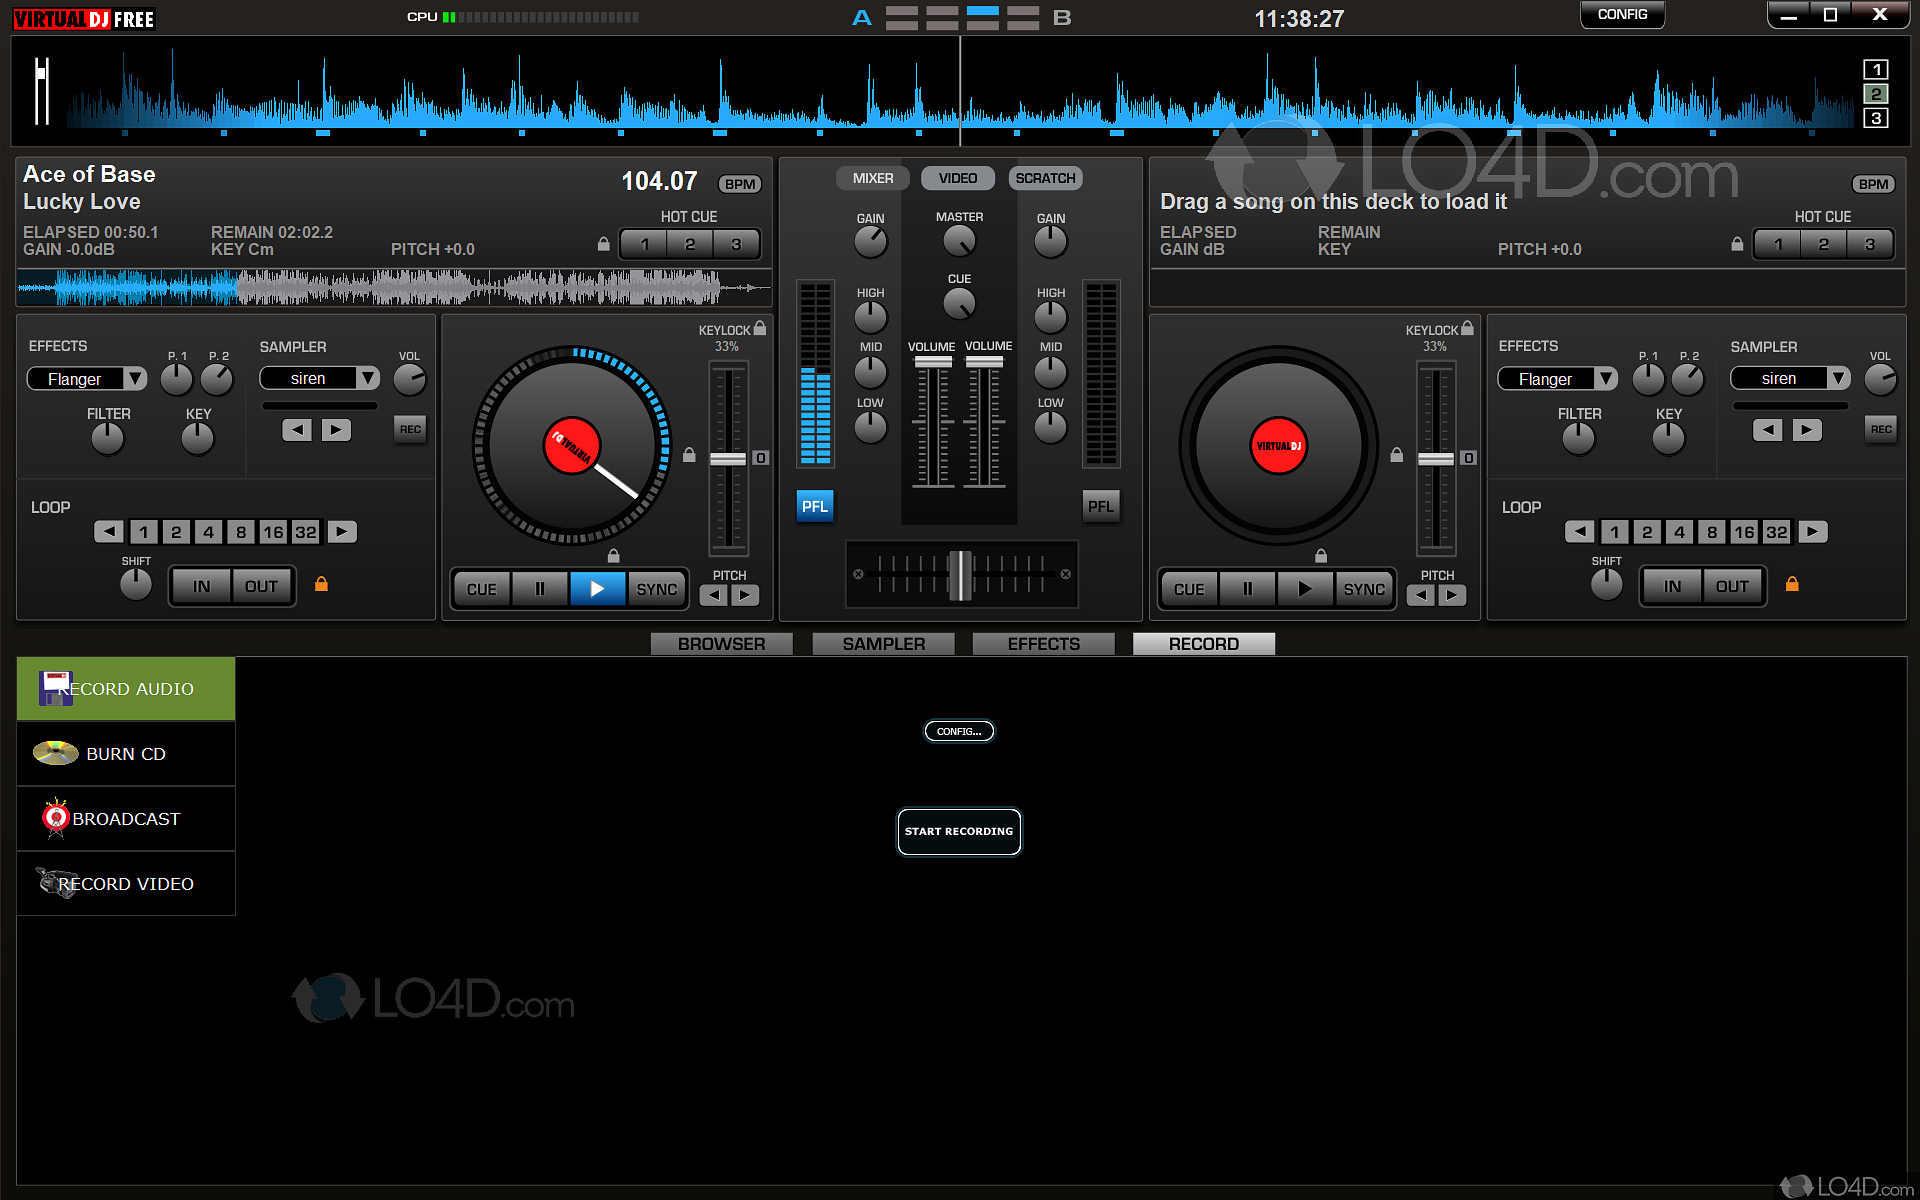 virtual dj free home edition 7.0.3